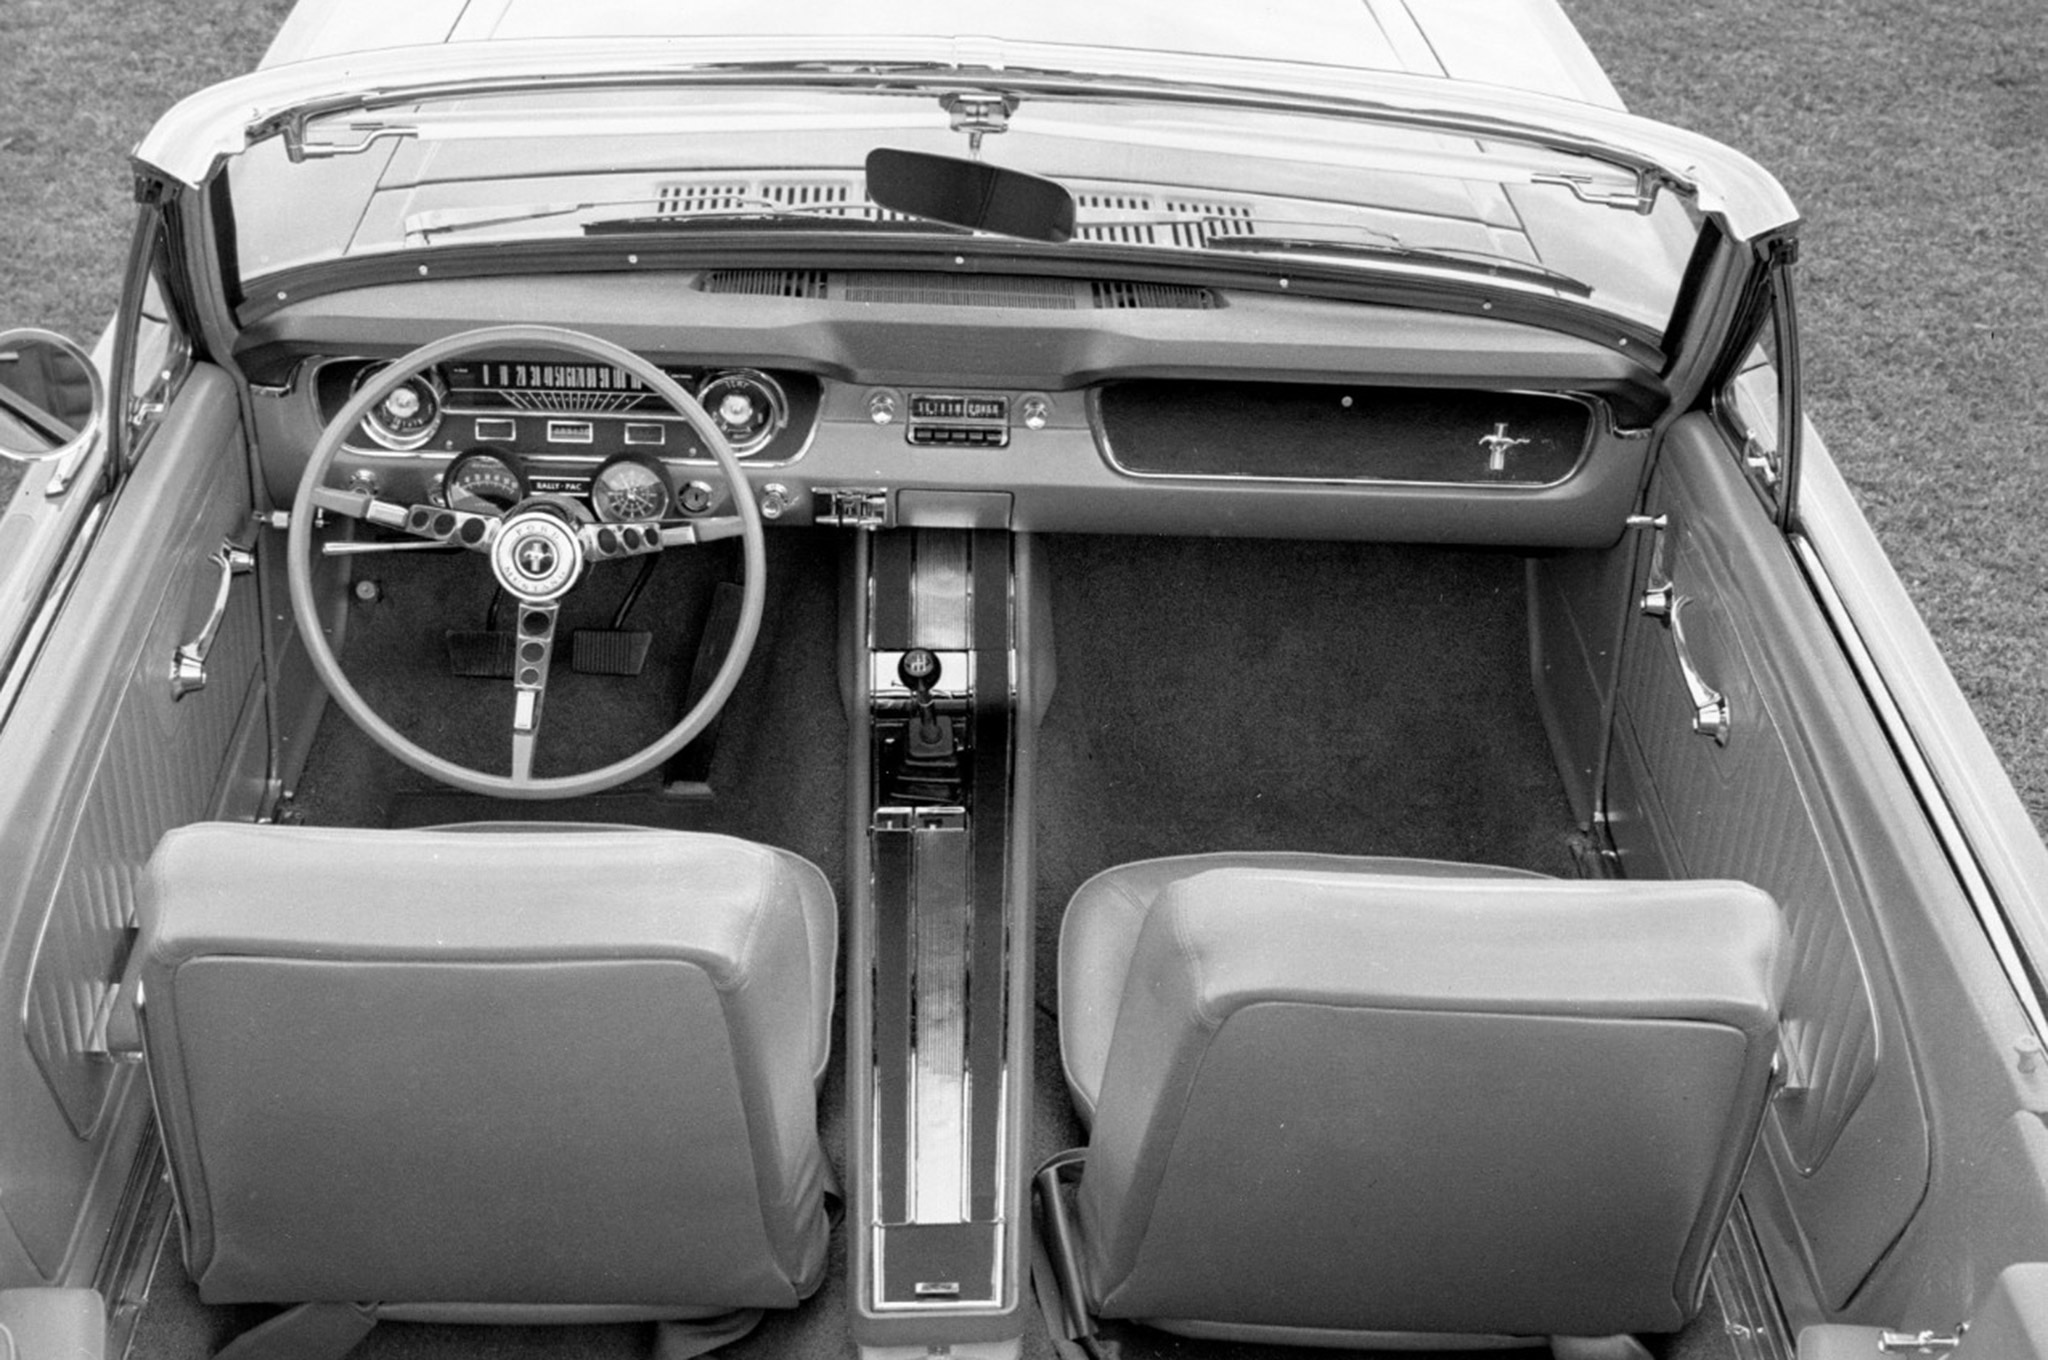 Ford Mustang Steering Wheel Evolution 1964 First Gen